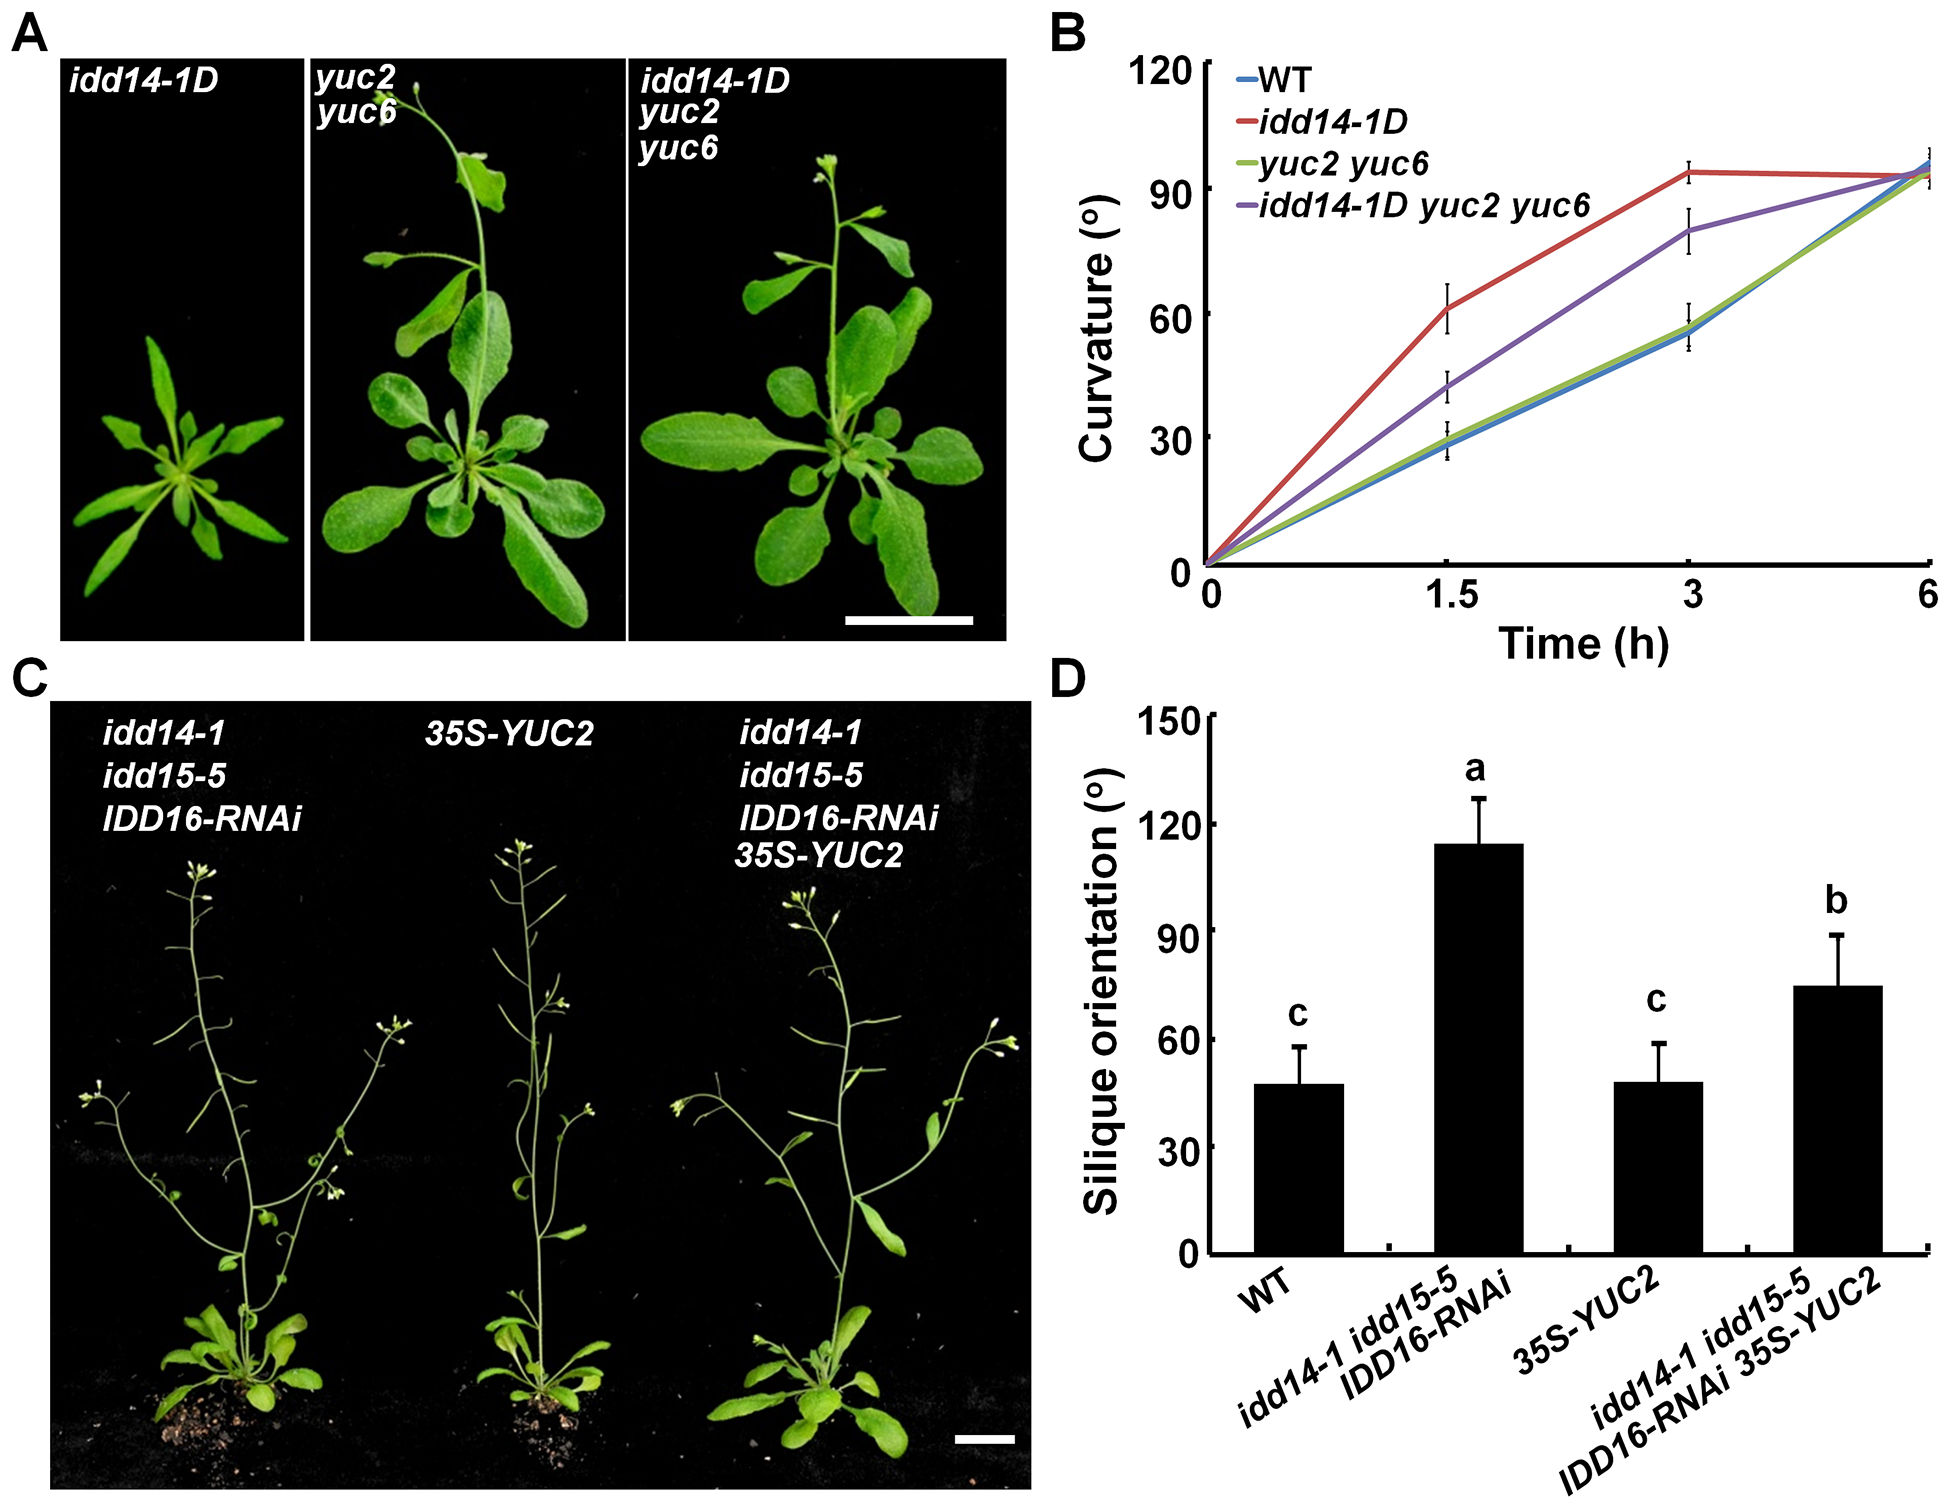 Genetic interaction of auxin biosynthesis and IDD-mediated organ morphogenesis and gravitropism.